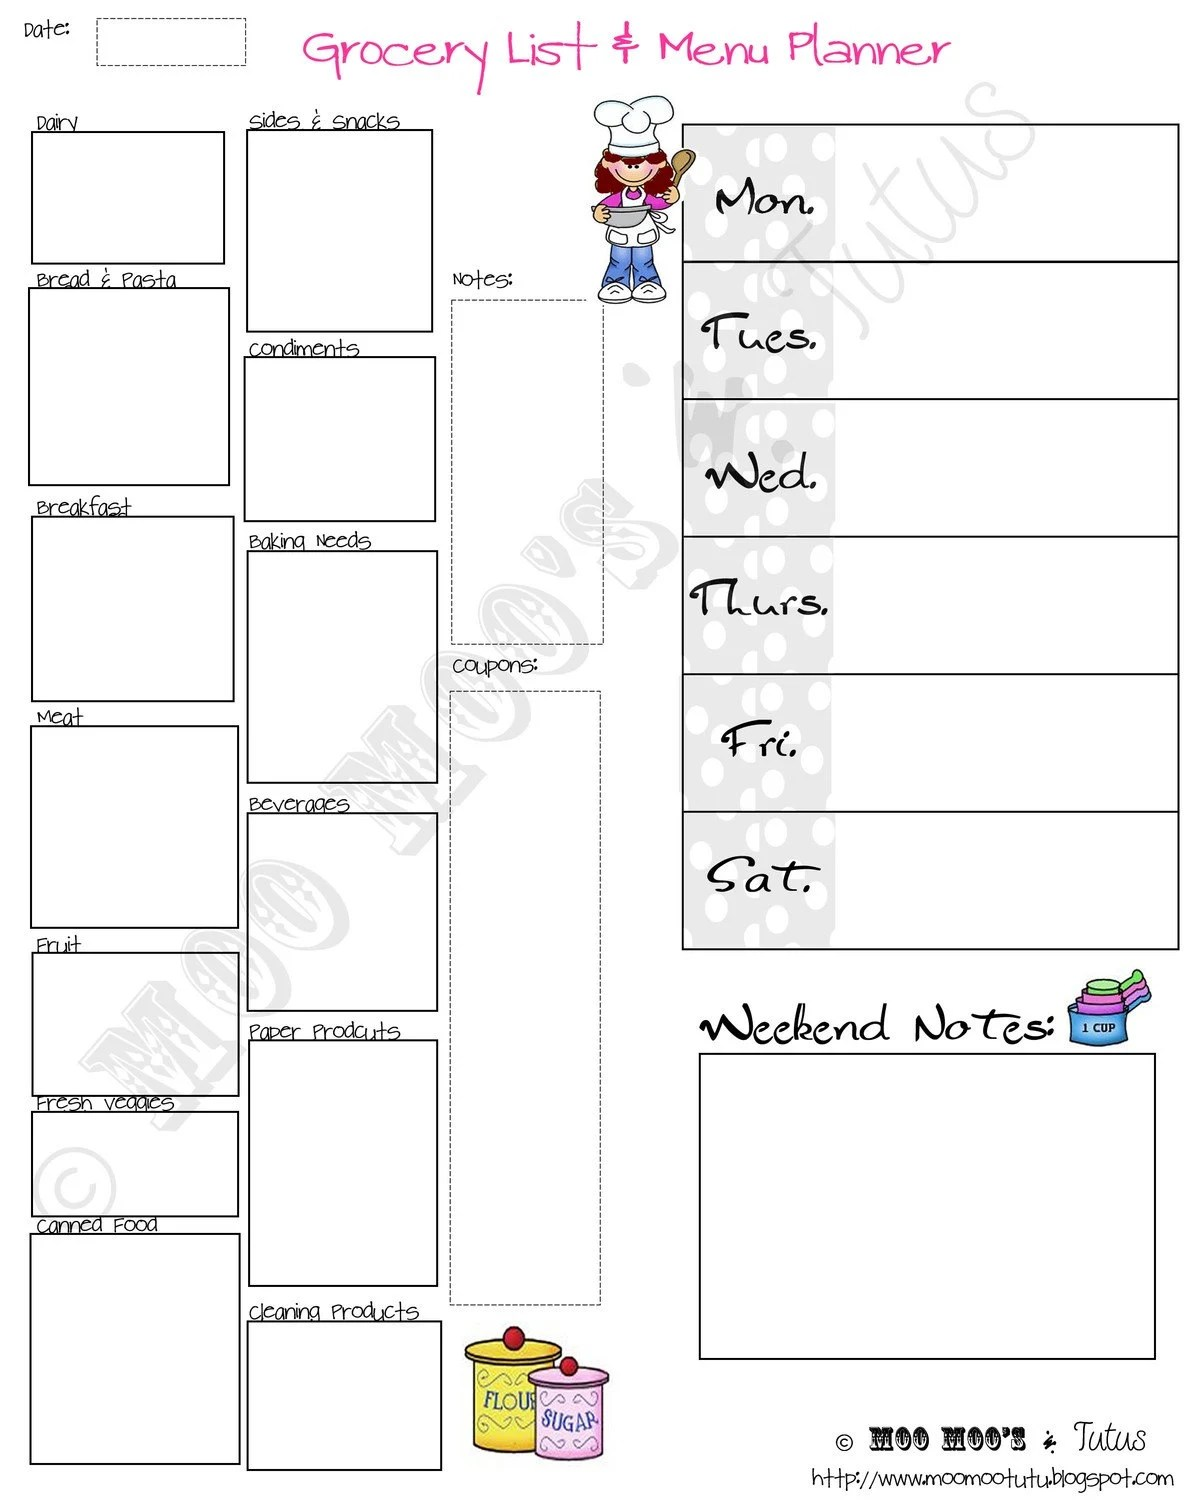 DIY Printable Grocery List and Menu Planner